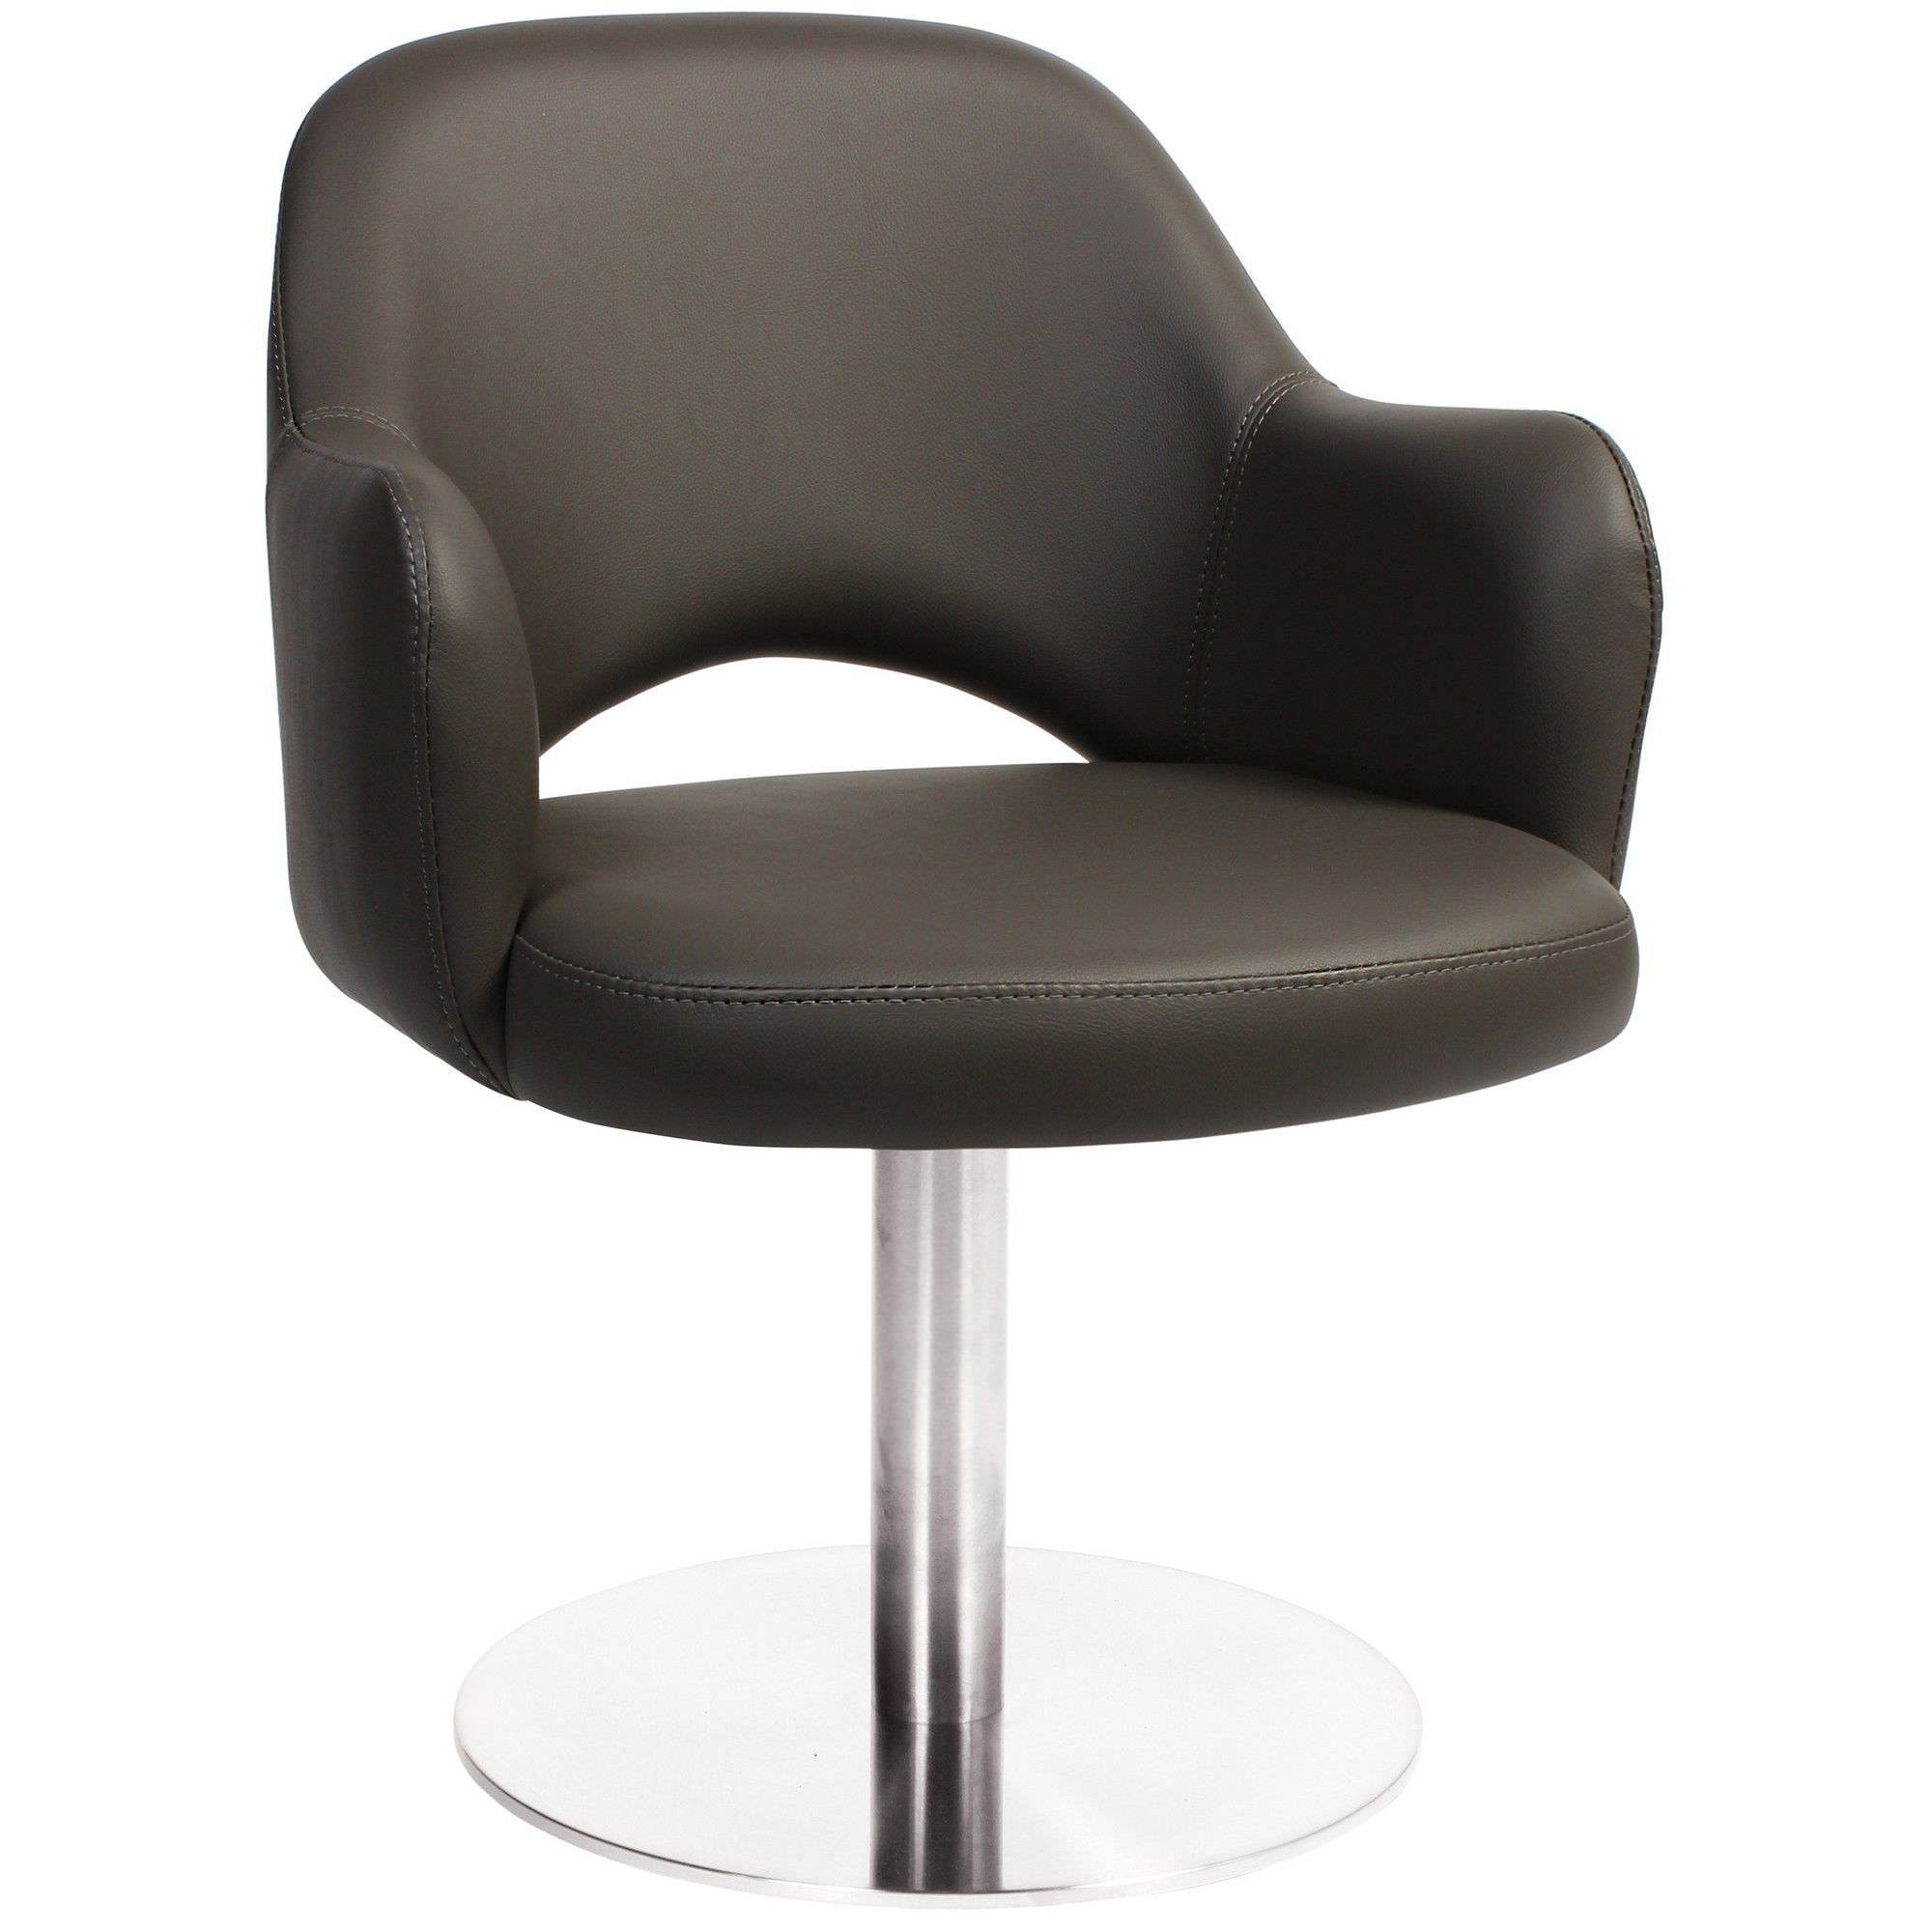 Albury Commercial Grade Vinyl Dining Stool with Arm, Metal Disc Leg, Charcoal / Silver